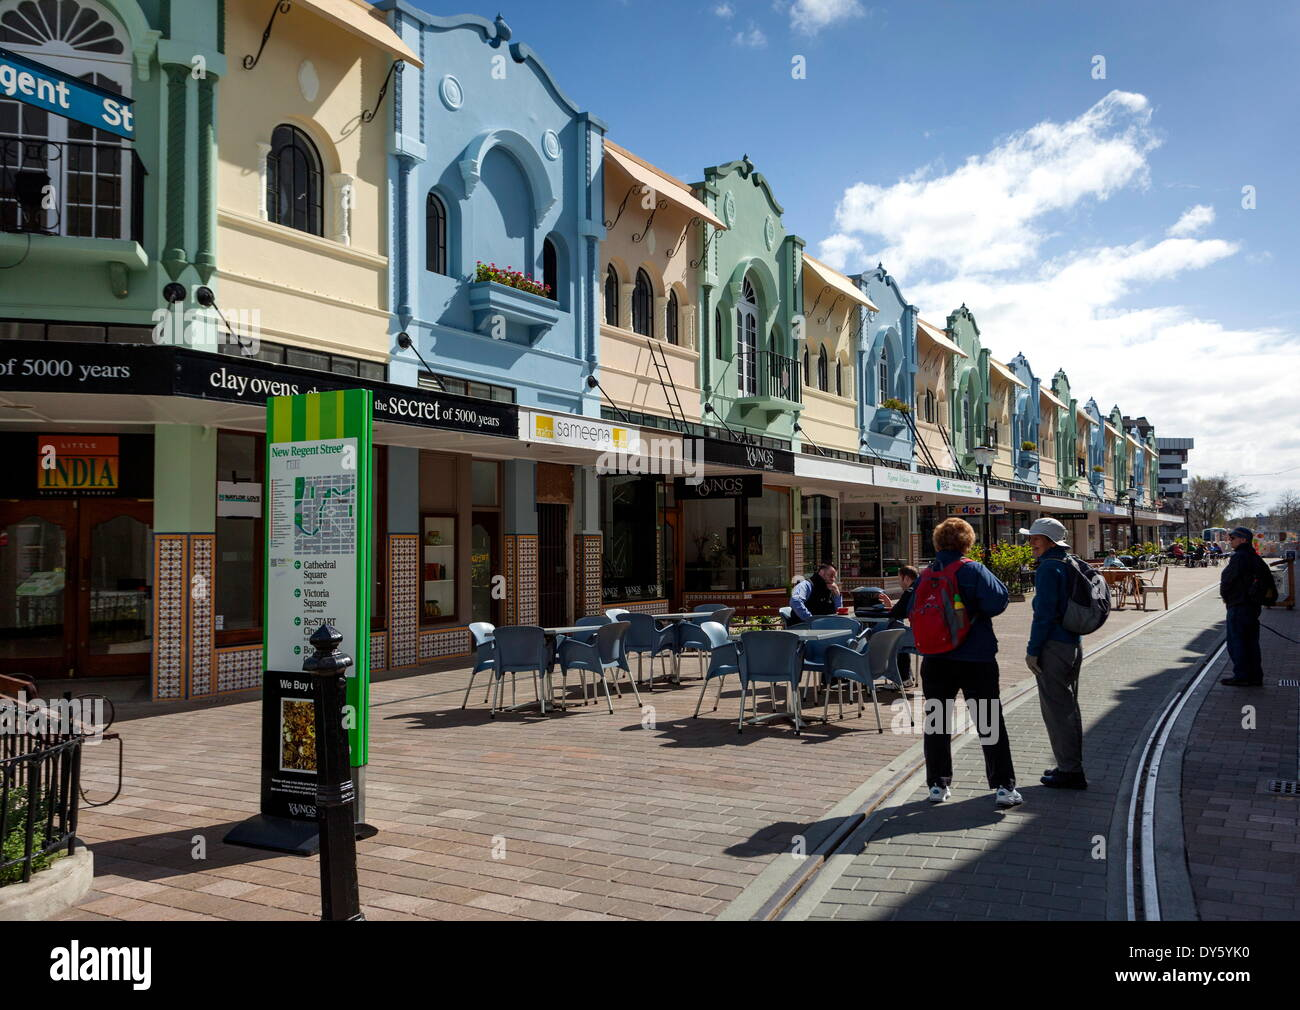 New Regent Street, Christchurch, Canterbury, South Island, New Zealand, Pacific - Stock Image